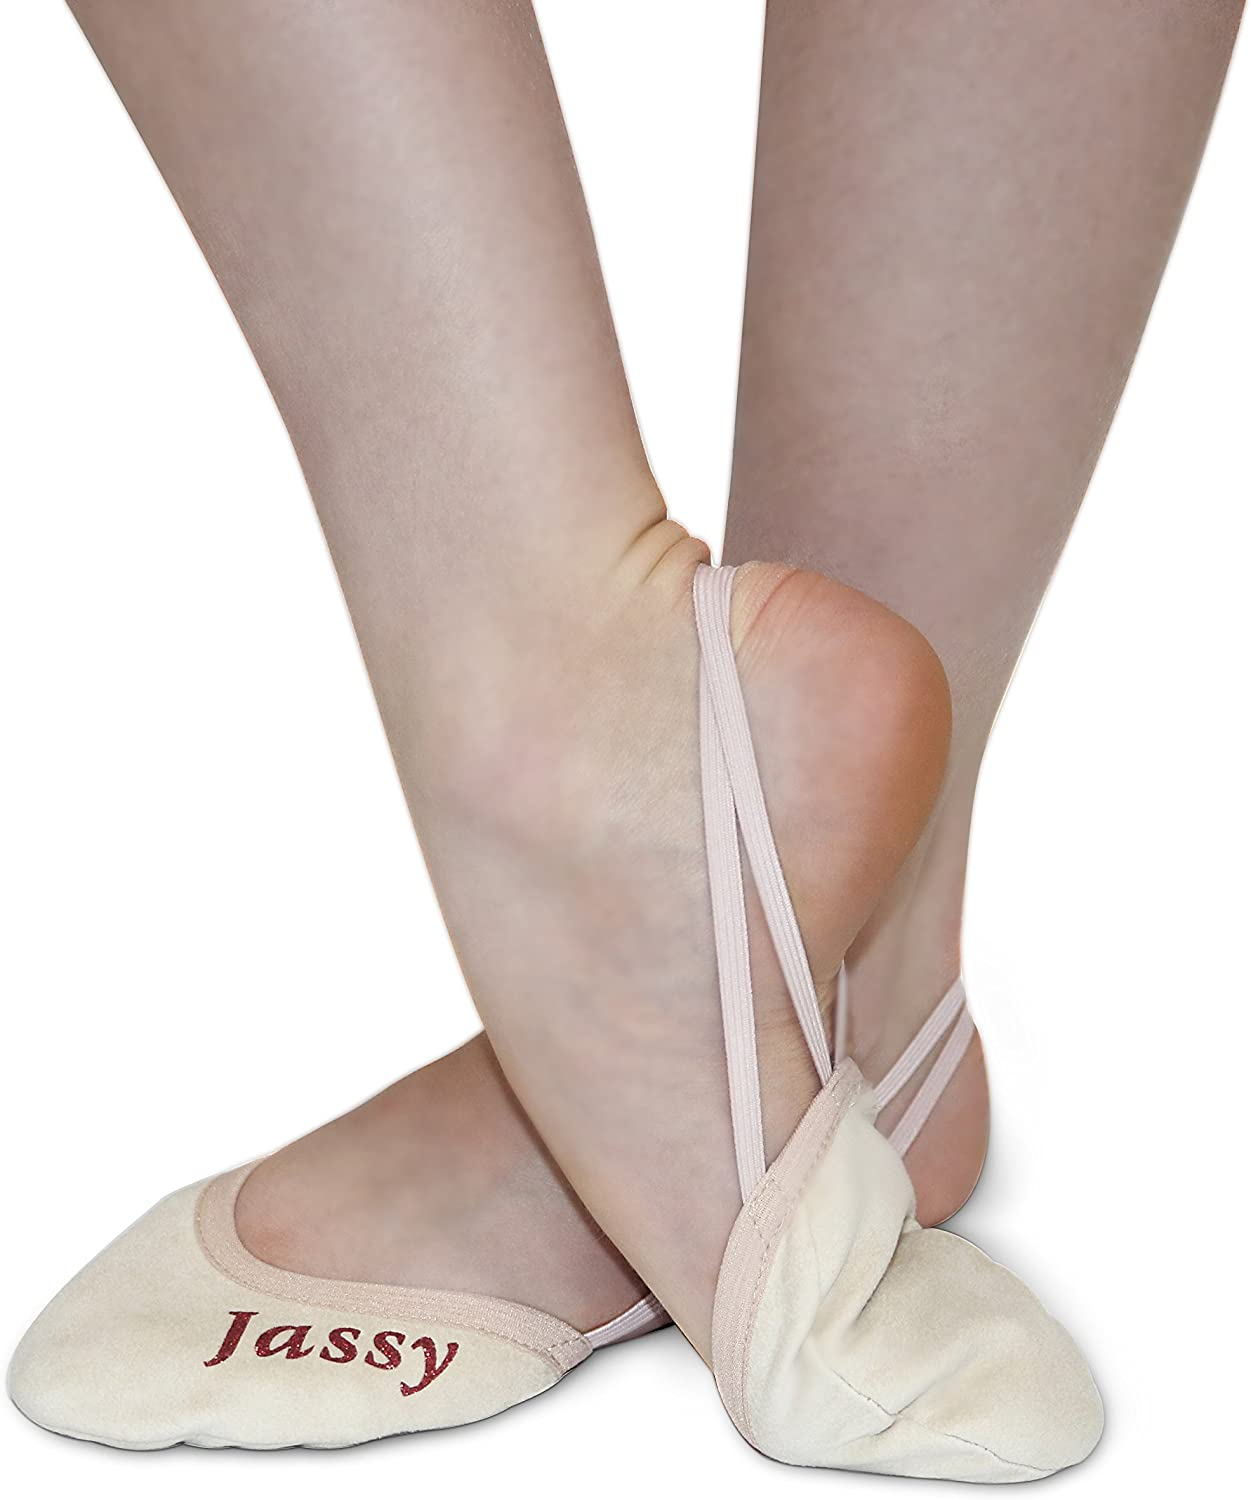 Kids-Teens-Adults Jassy Rhythmic Gymnastics Beginners Toe Shoes for All Ages MS02